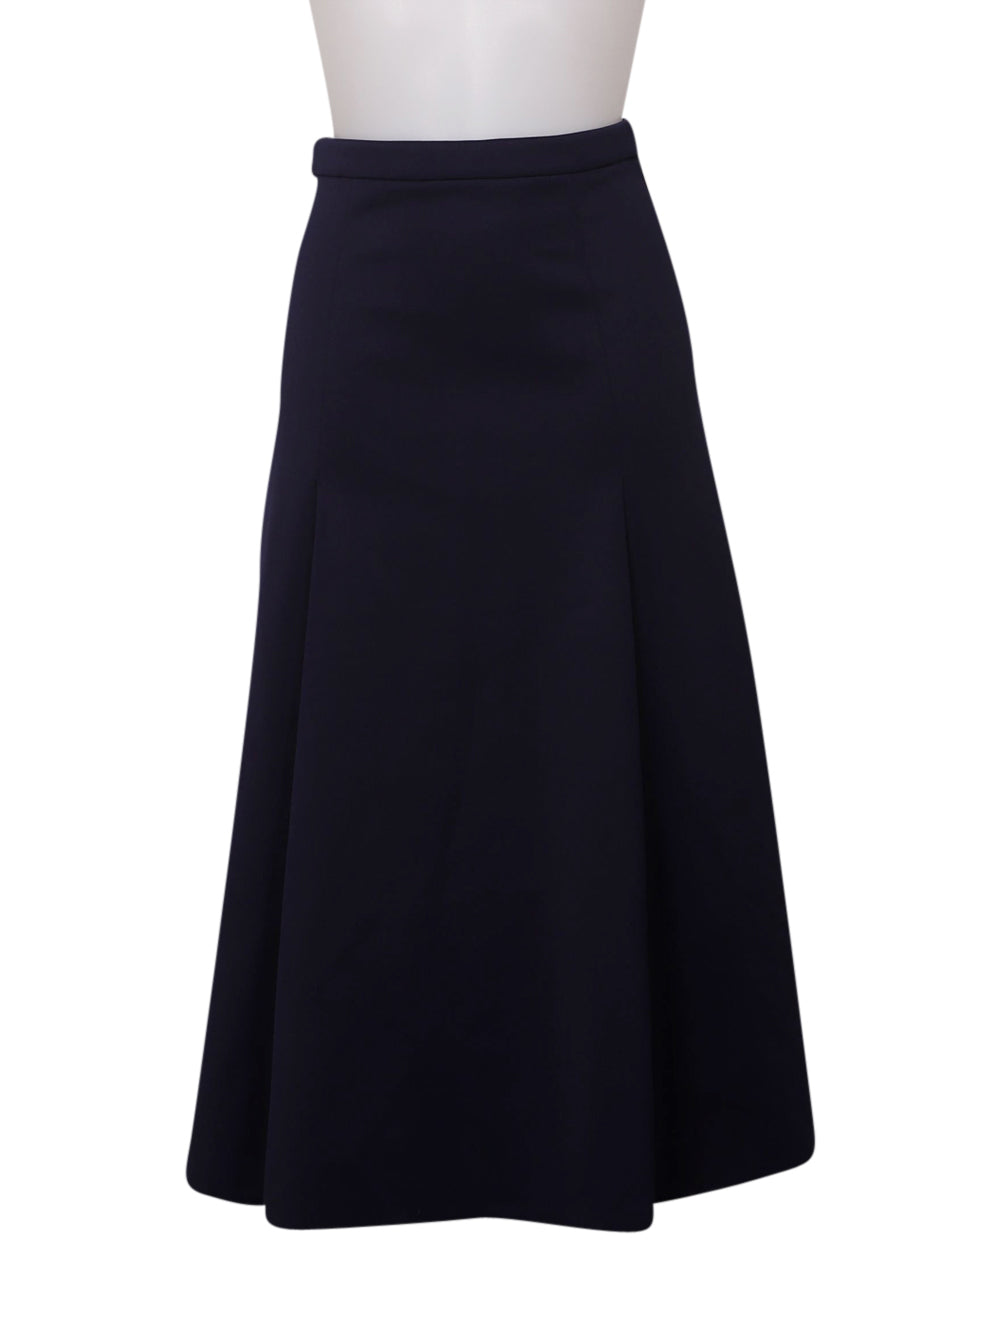 Front photo of Preloved Asos Blue Woman's skirt - size 8/S